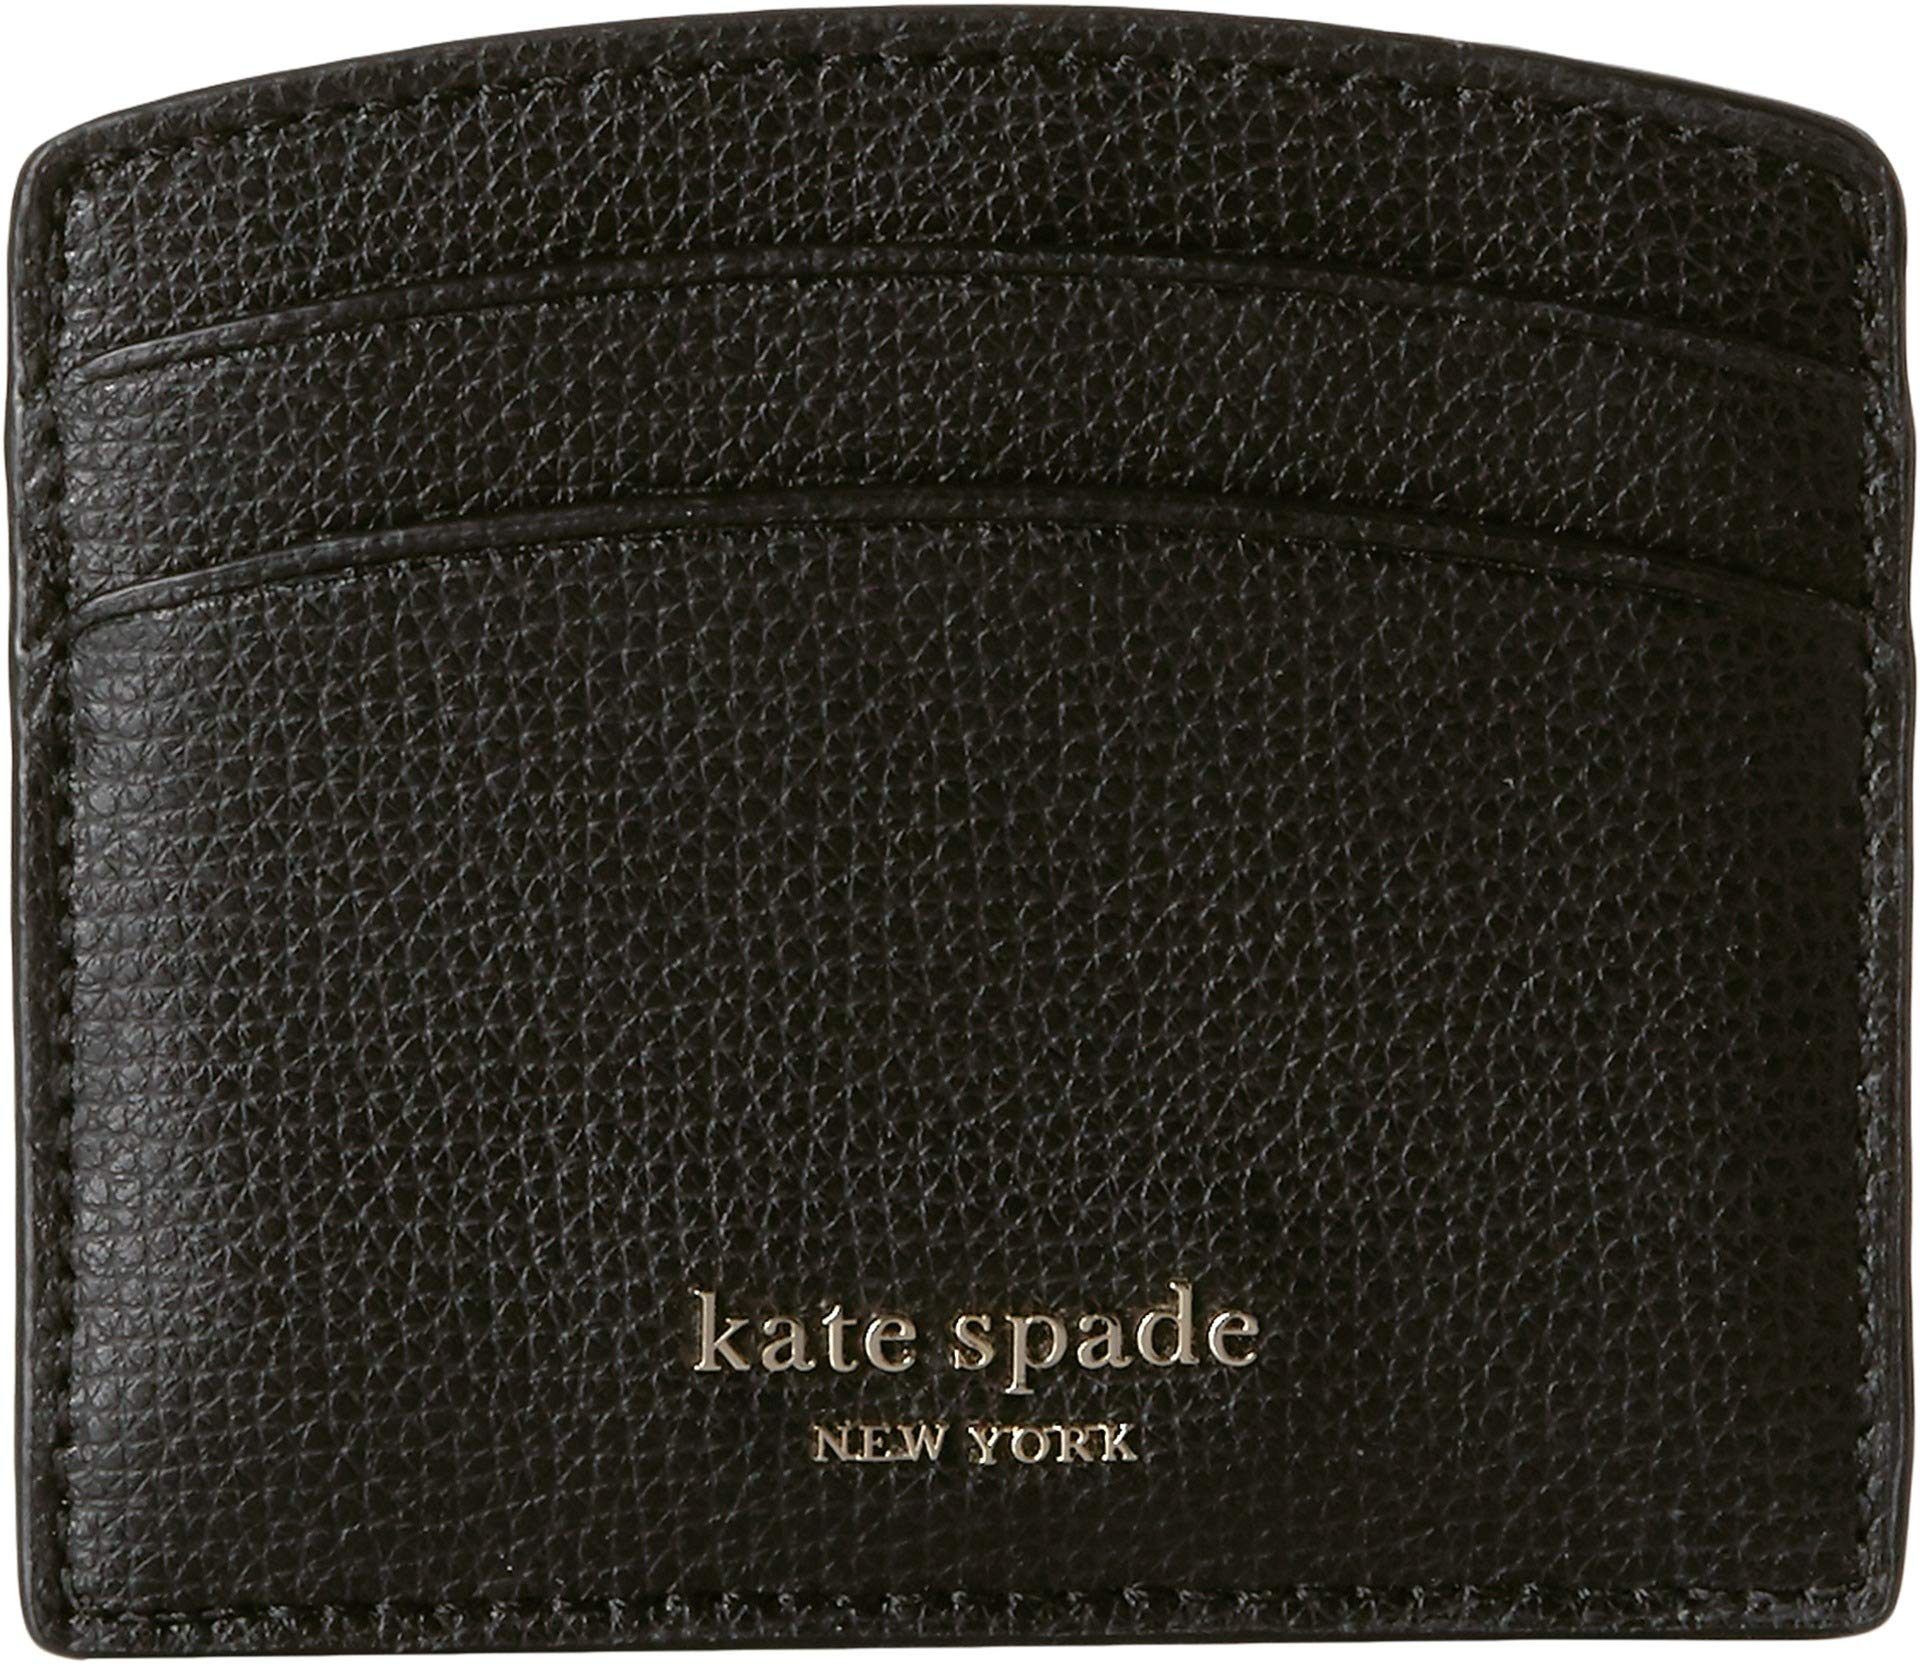 Kate Spade New York Women's Sylvia Card Holder, Black, One Size